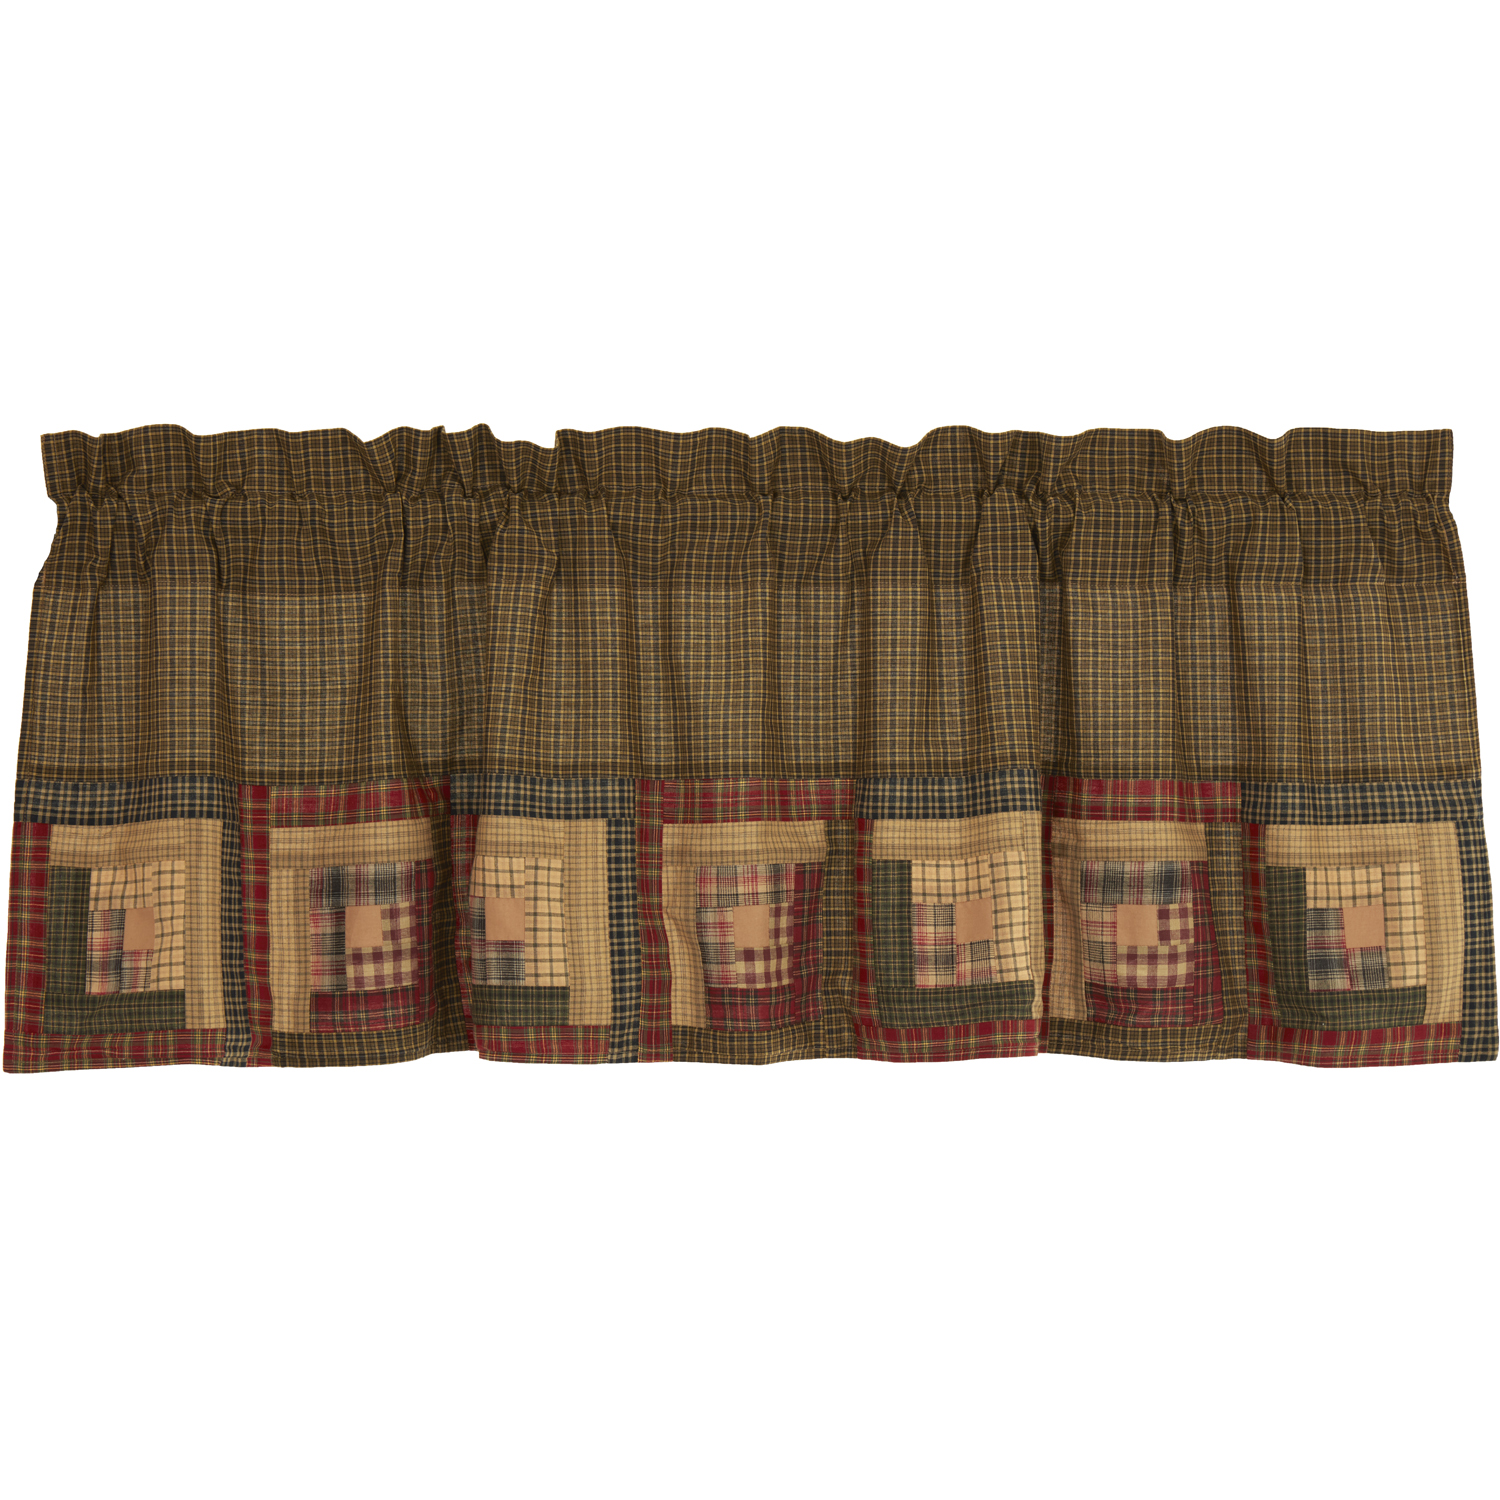 Tea Cabin Valance Log Cabin Block Border 20x60